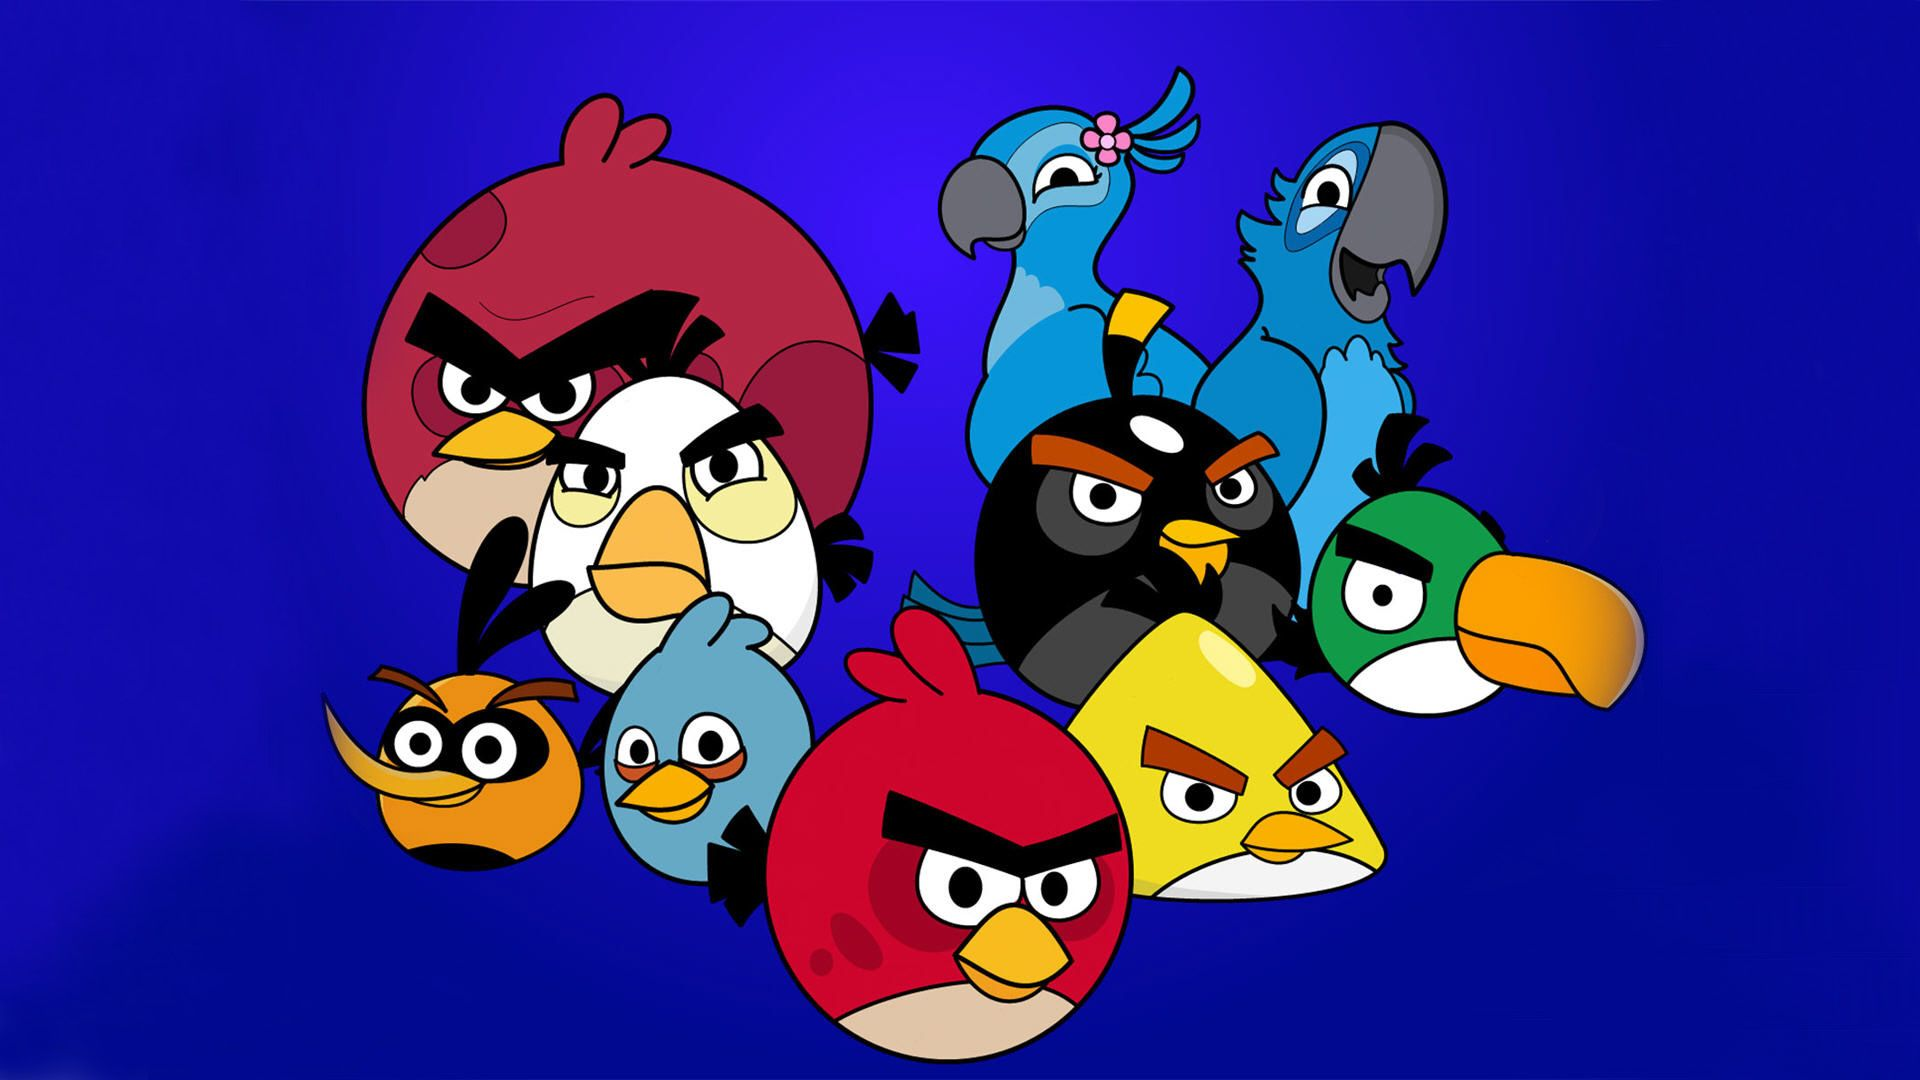 album angry birds wallpaper image for fb cover cartoons wallpapers 1024a—1024 angry birds wallpaper